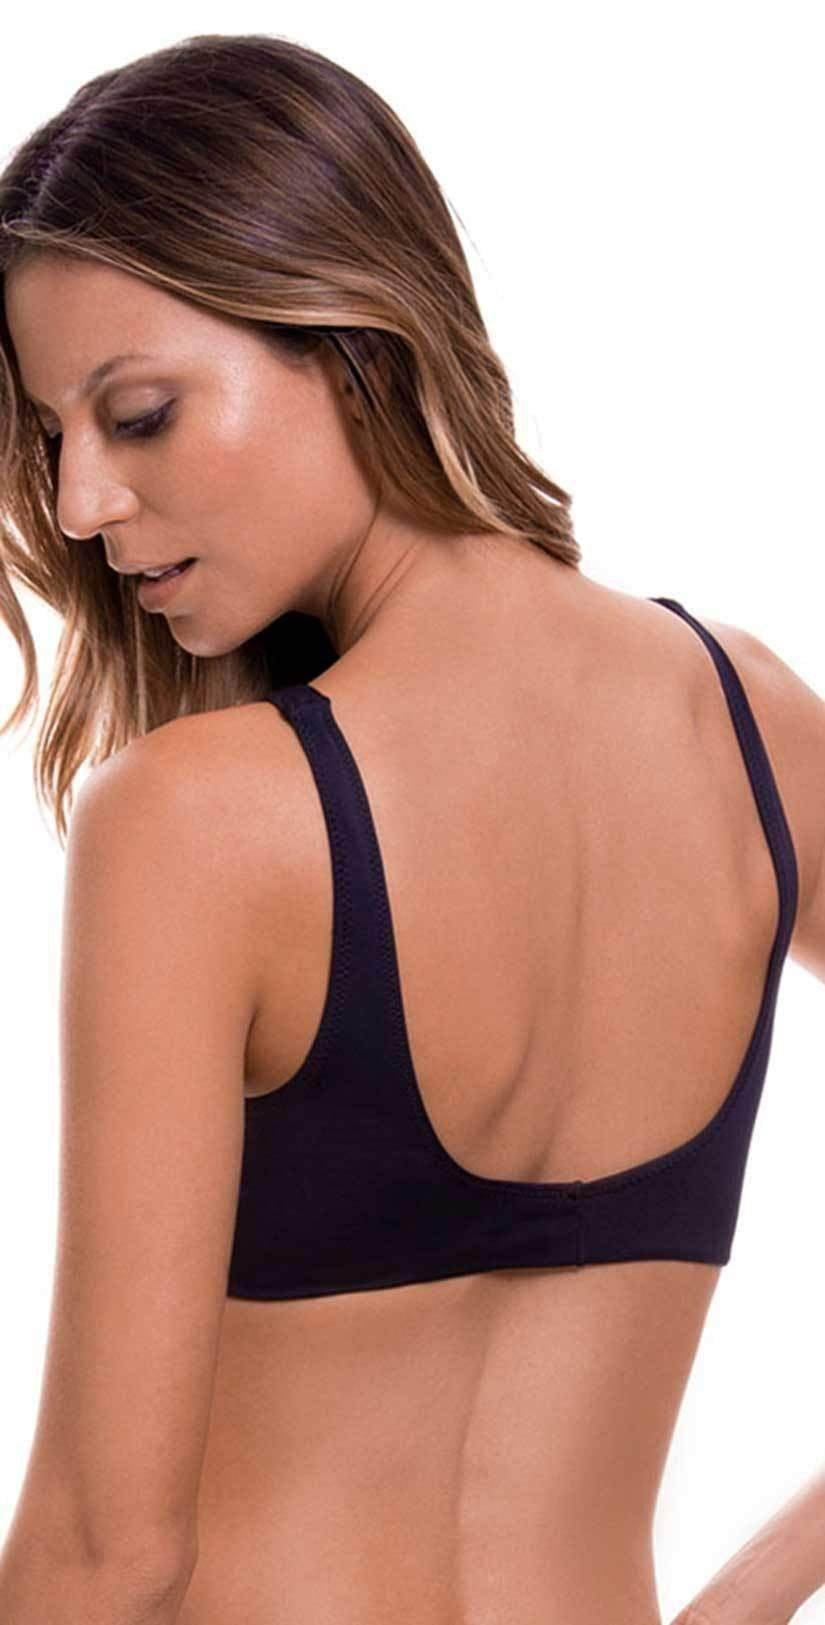 Milonga Removable Knot Top in Basic Black 072: